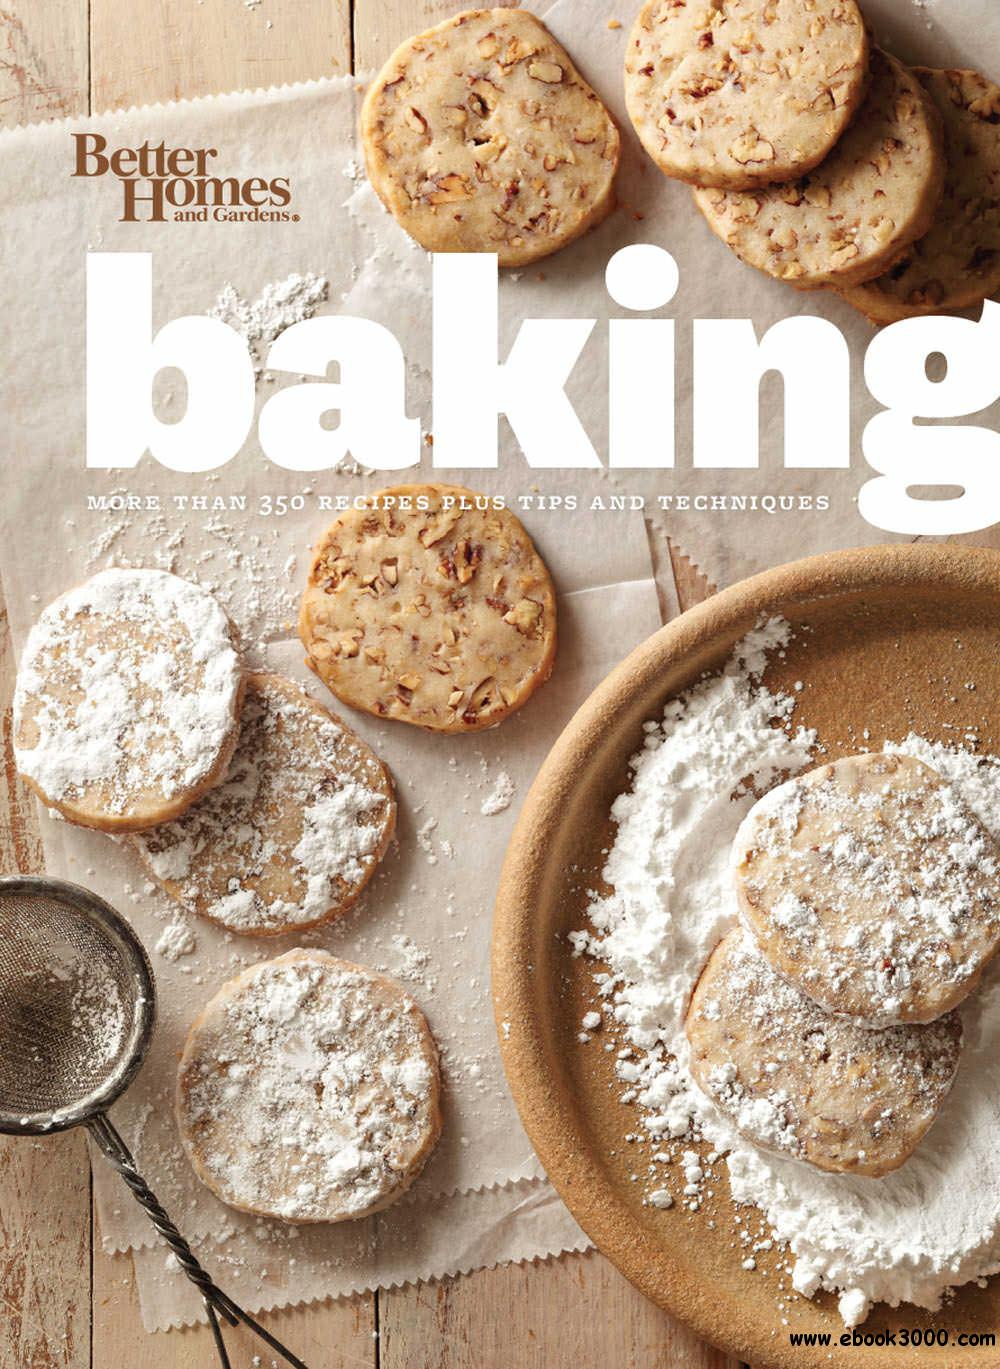 Better Homes and Gardens Baking: More than 350 Recipes Plus Tips and Techniques free download